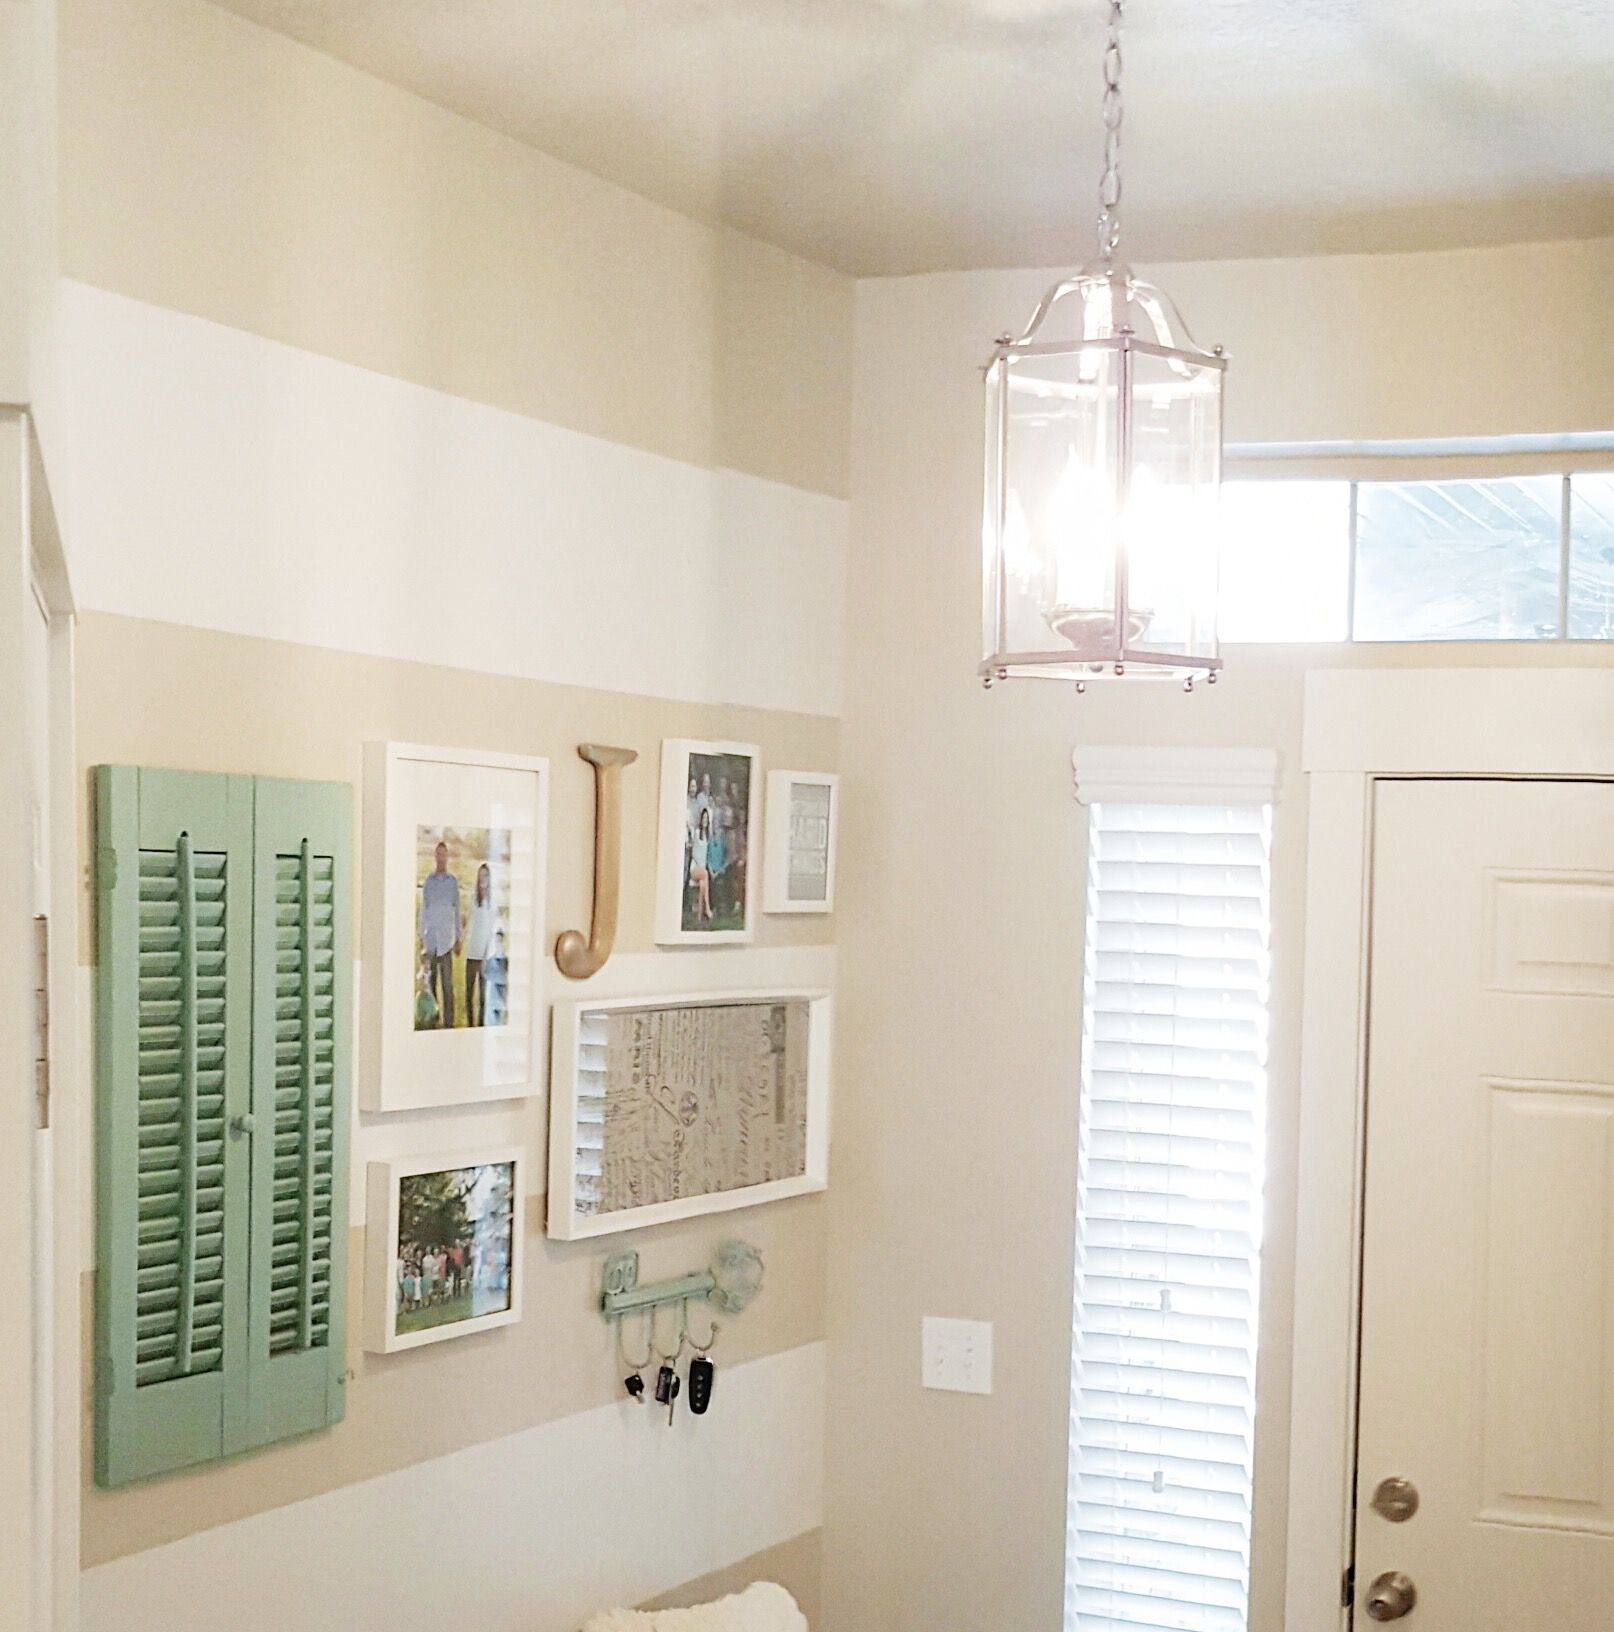 Antique shutter, ikea frames, gallery wall entry, brushed nickel pendant light